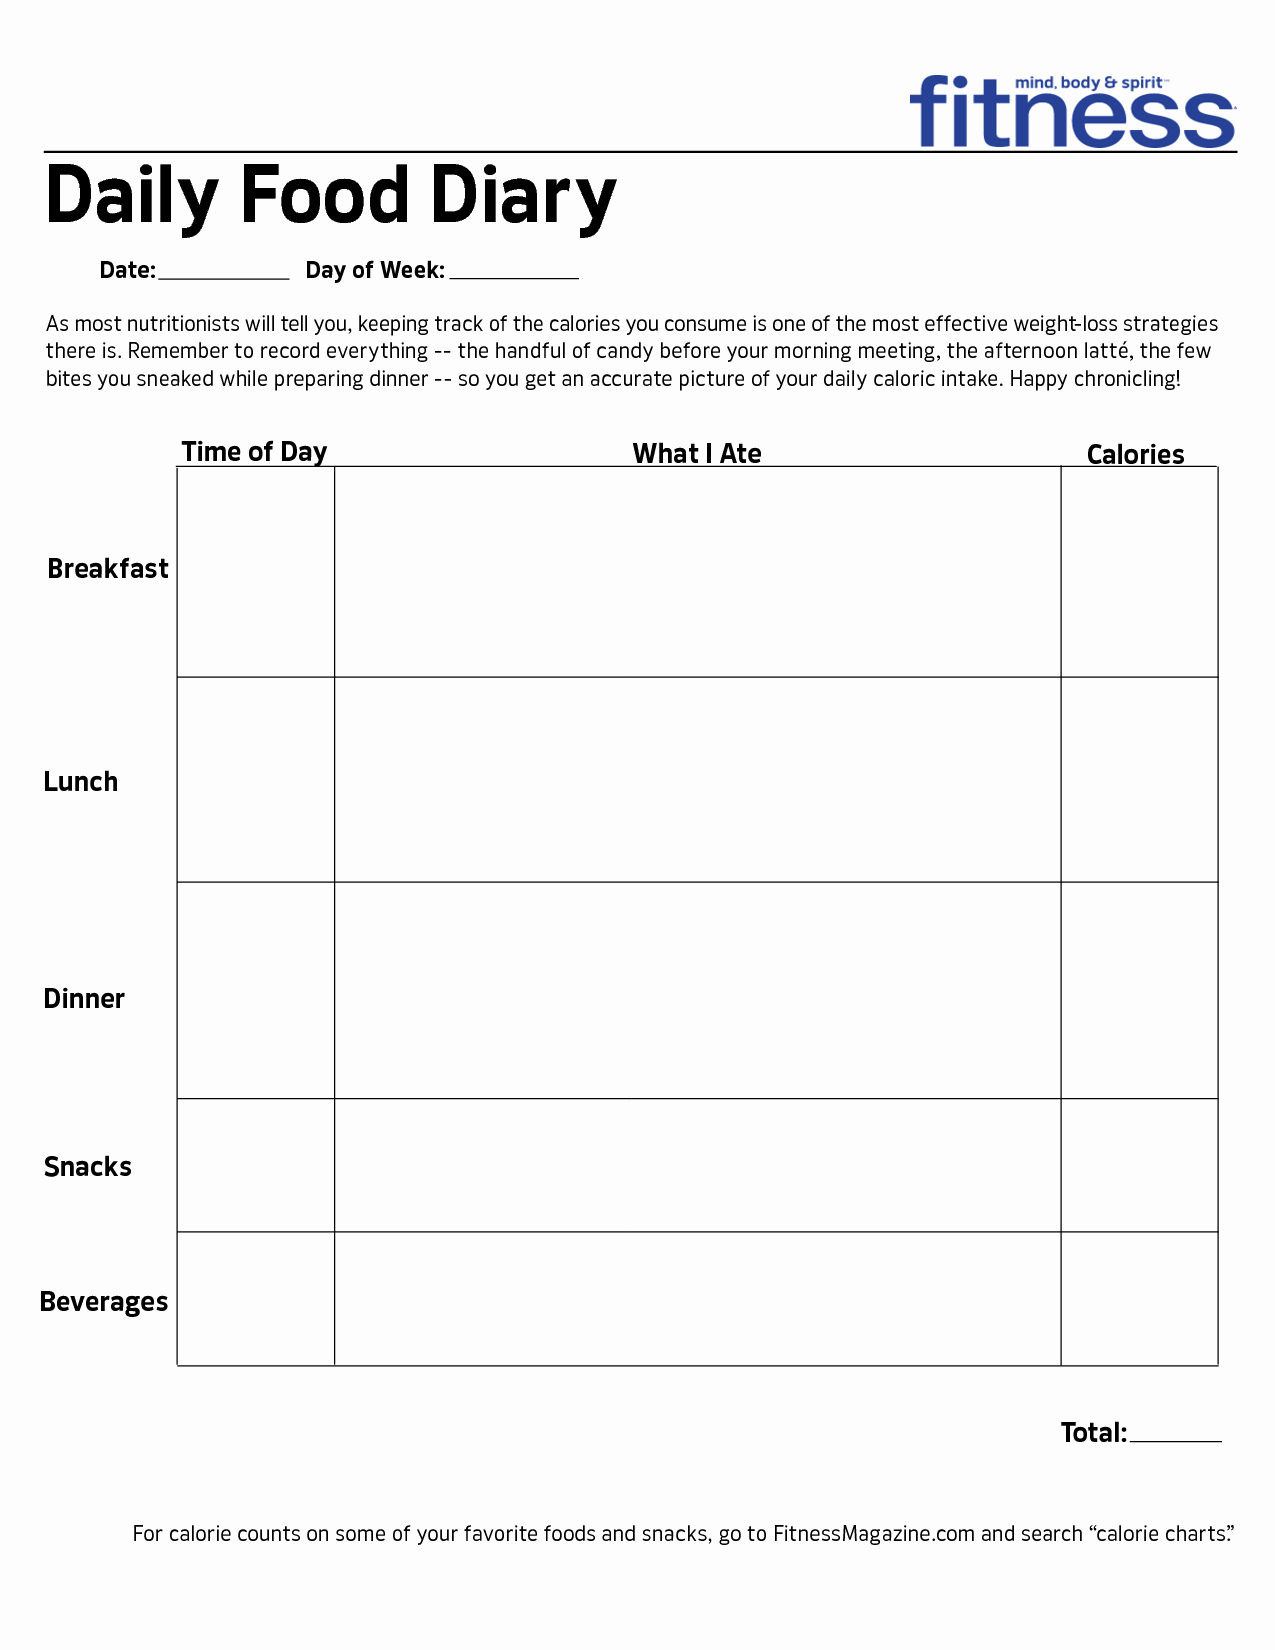 Daily Food Intake Chart New Best S Of Printable Daily Food Intake Chart